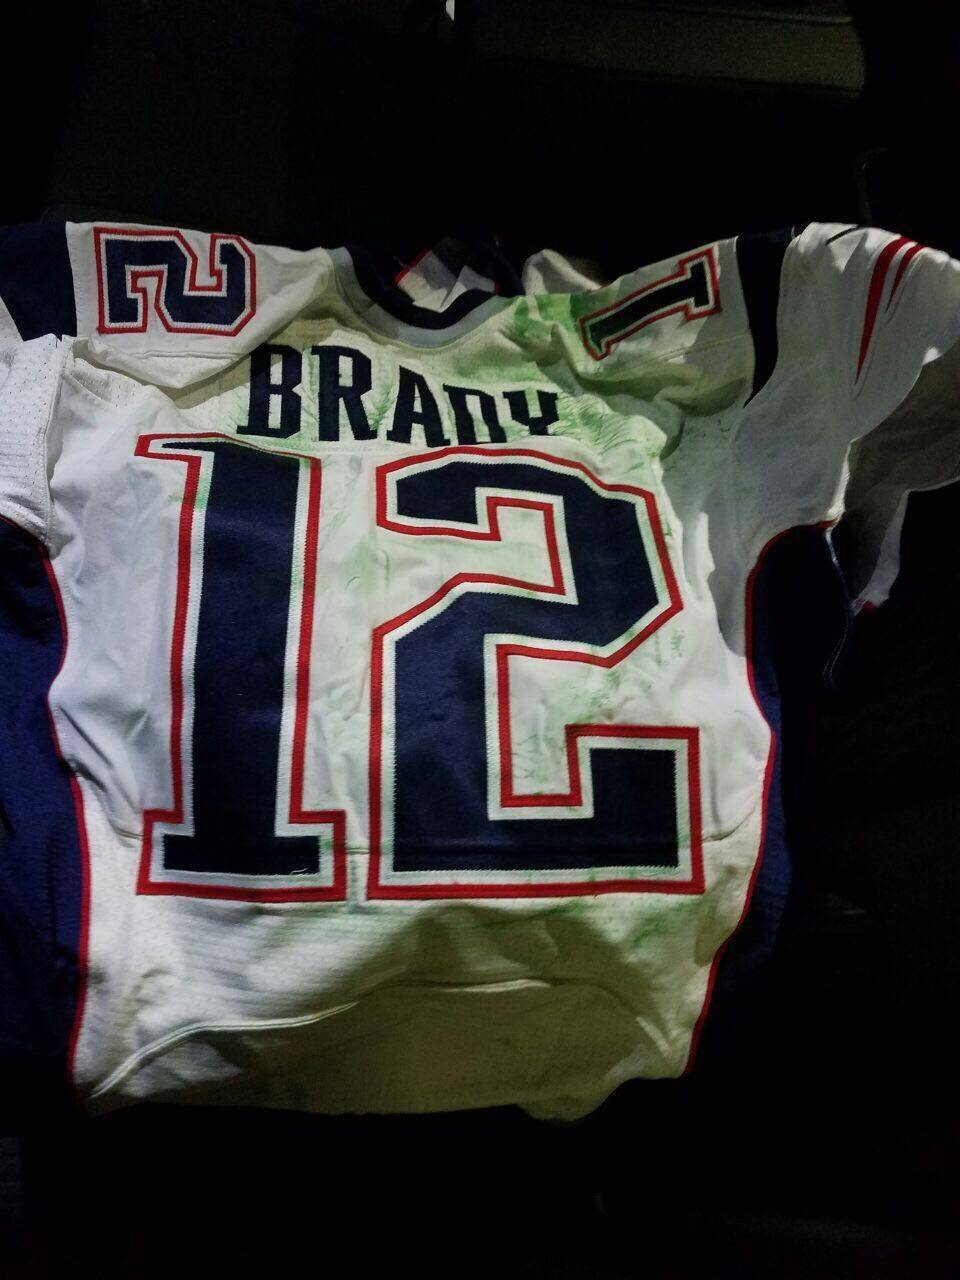 4348d01d2 Brady s Super Bowl jerseys returned to New England Patriots